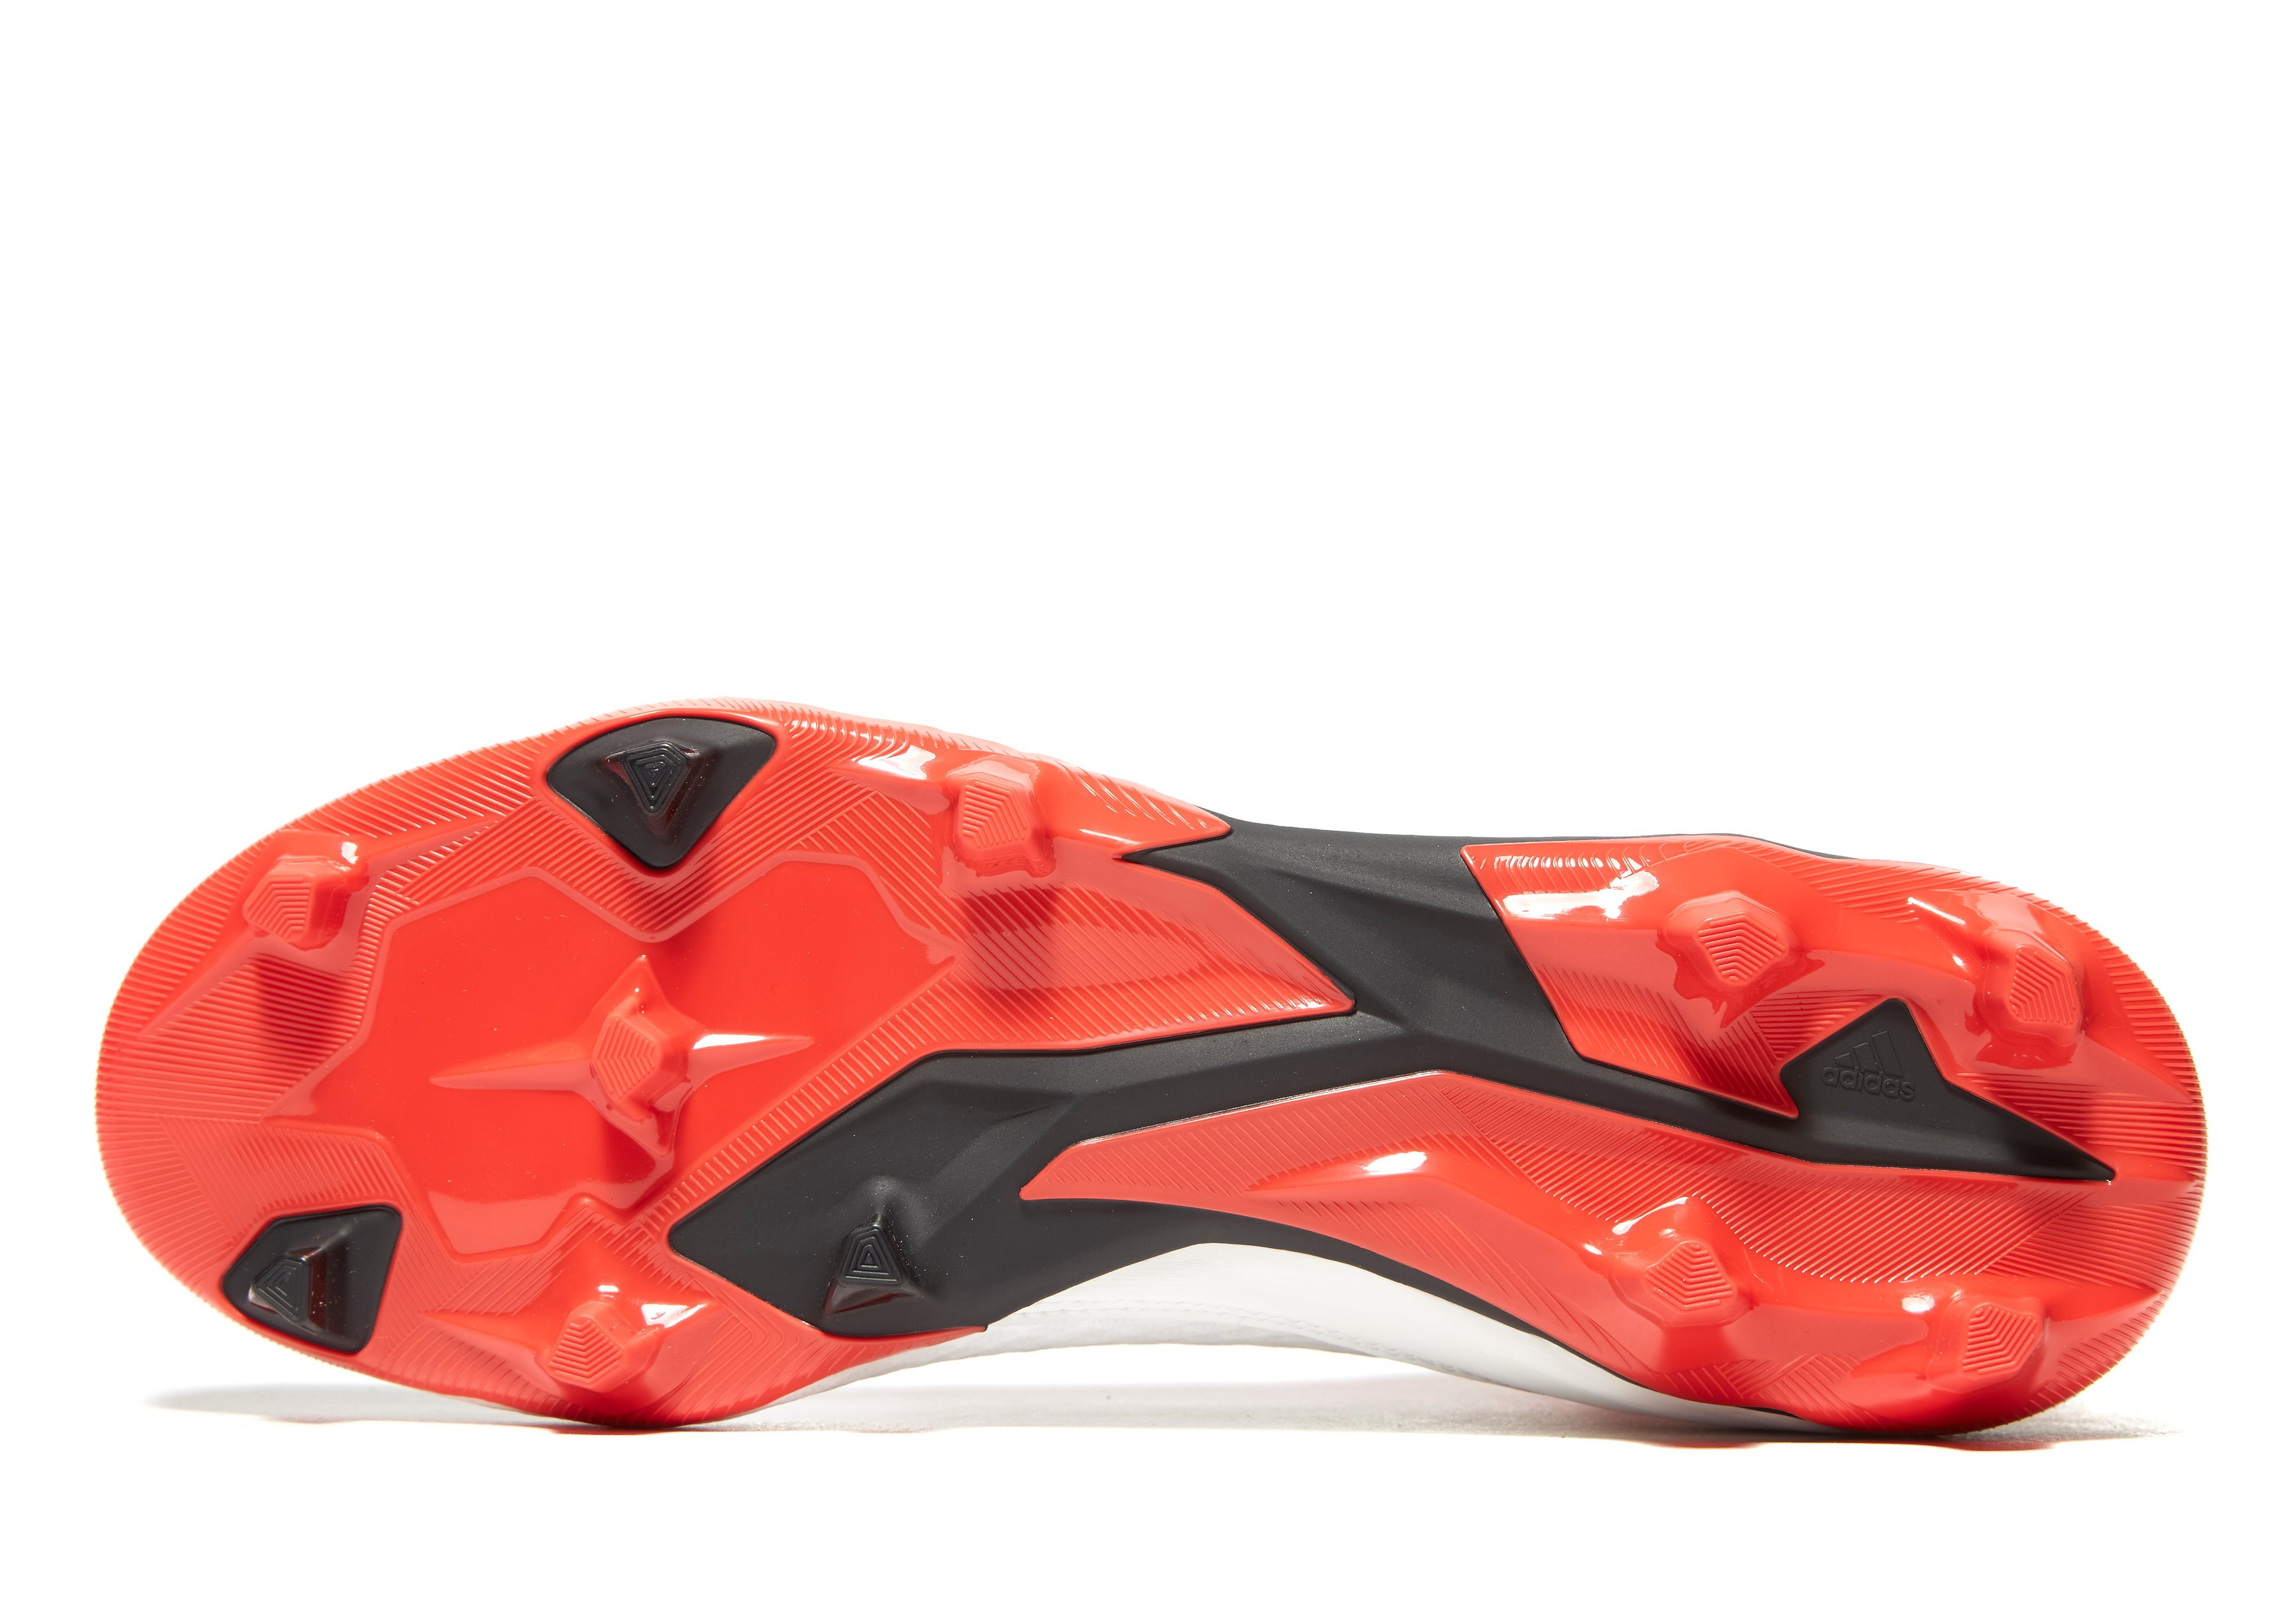 adidas Cold Blooded Predator 18.3 FG